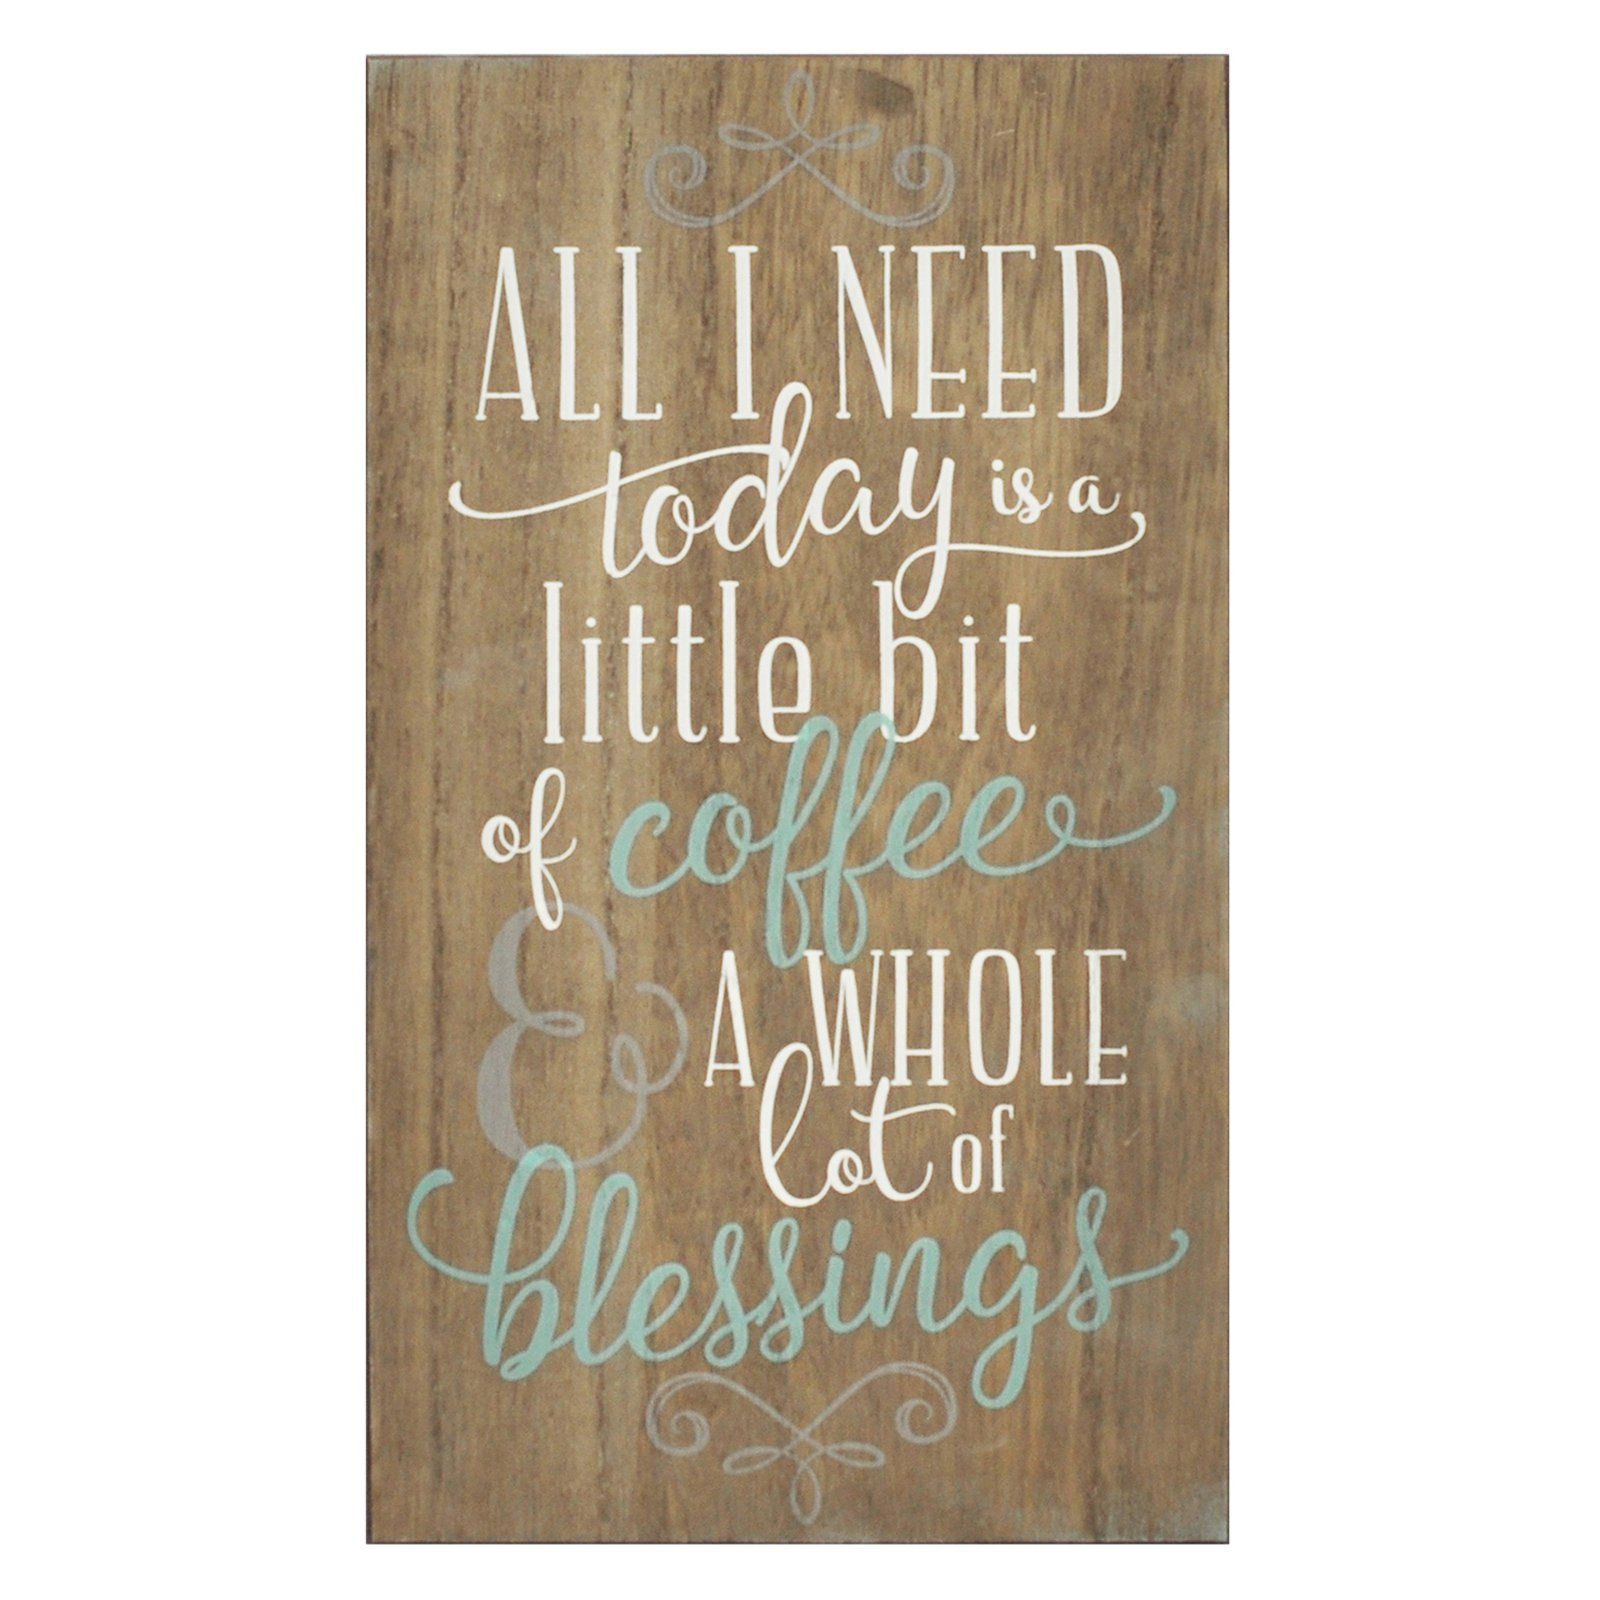 Stratton Home Decor Coffee and Blessings Wall Artwork by Stratton Home Decor